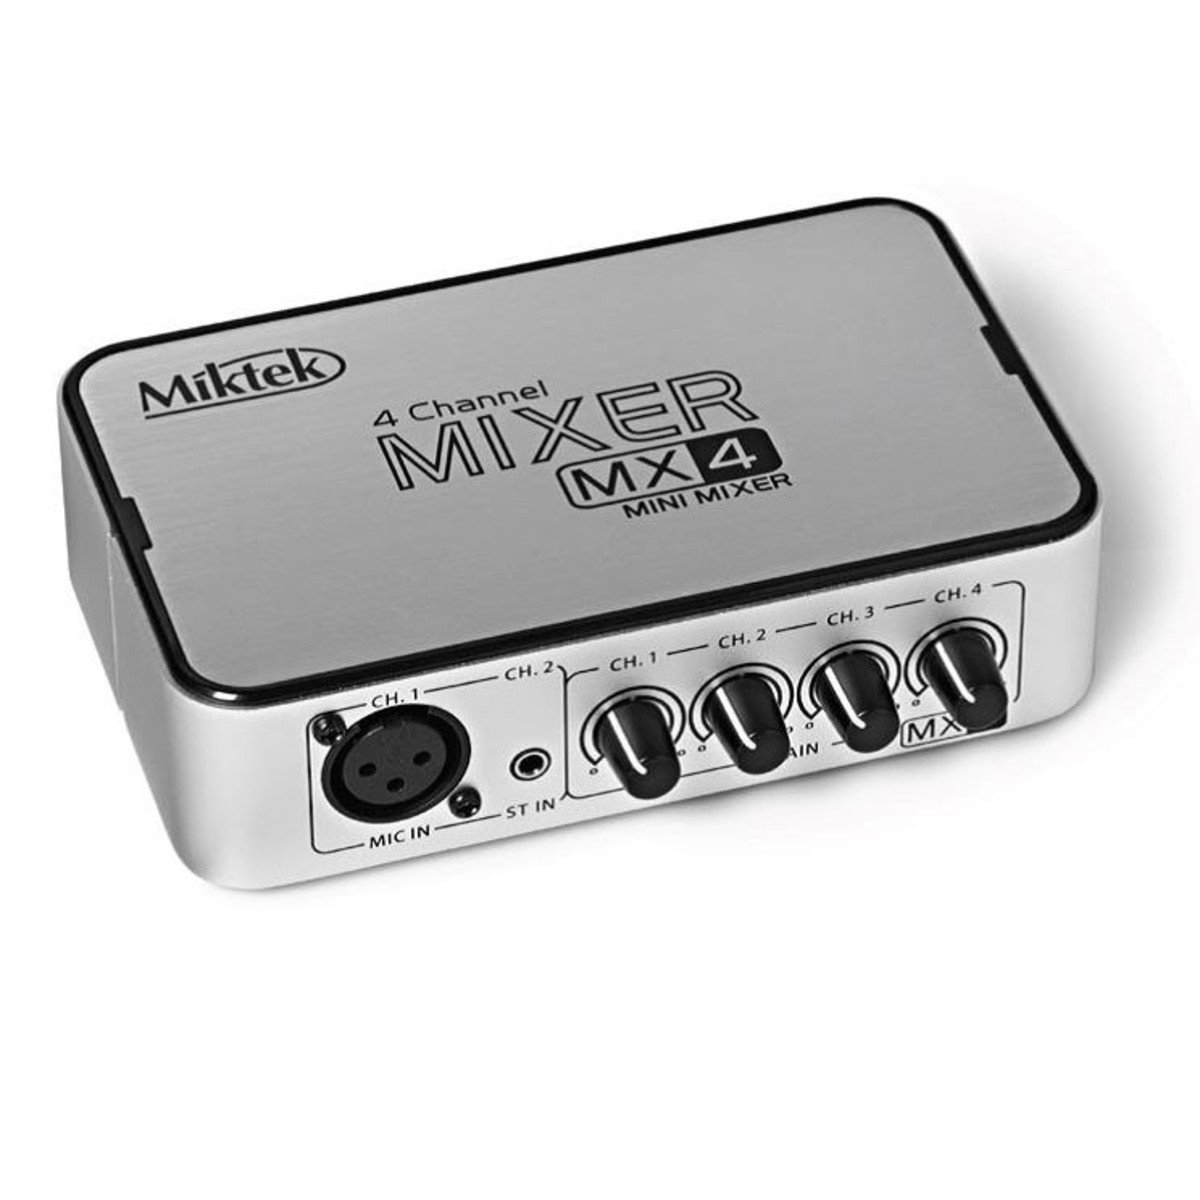 MIKTEK MX4 FOUR-CHANNEL MIXER by Mitek (Image #1)